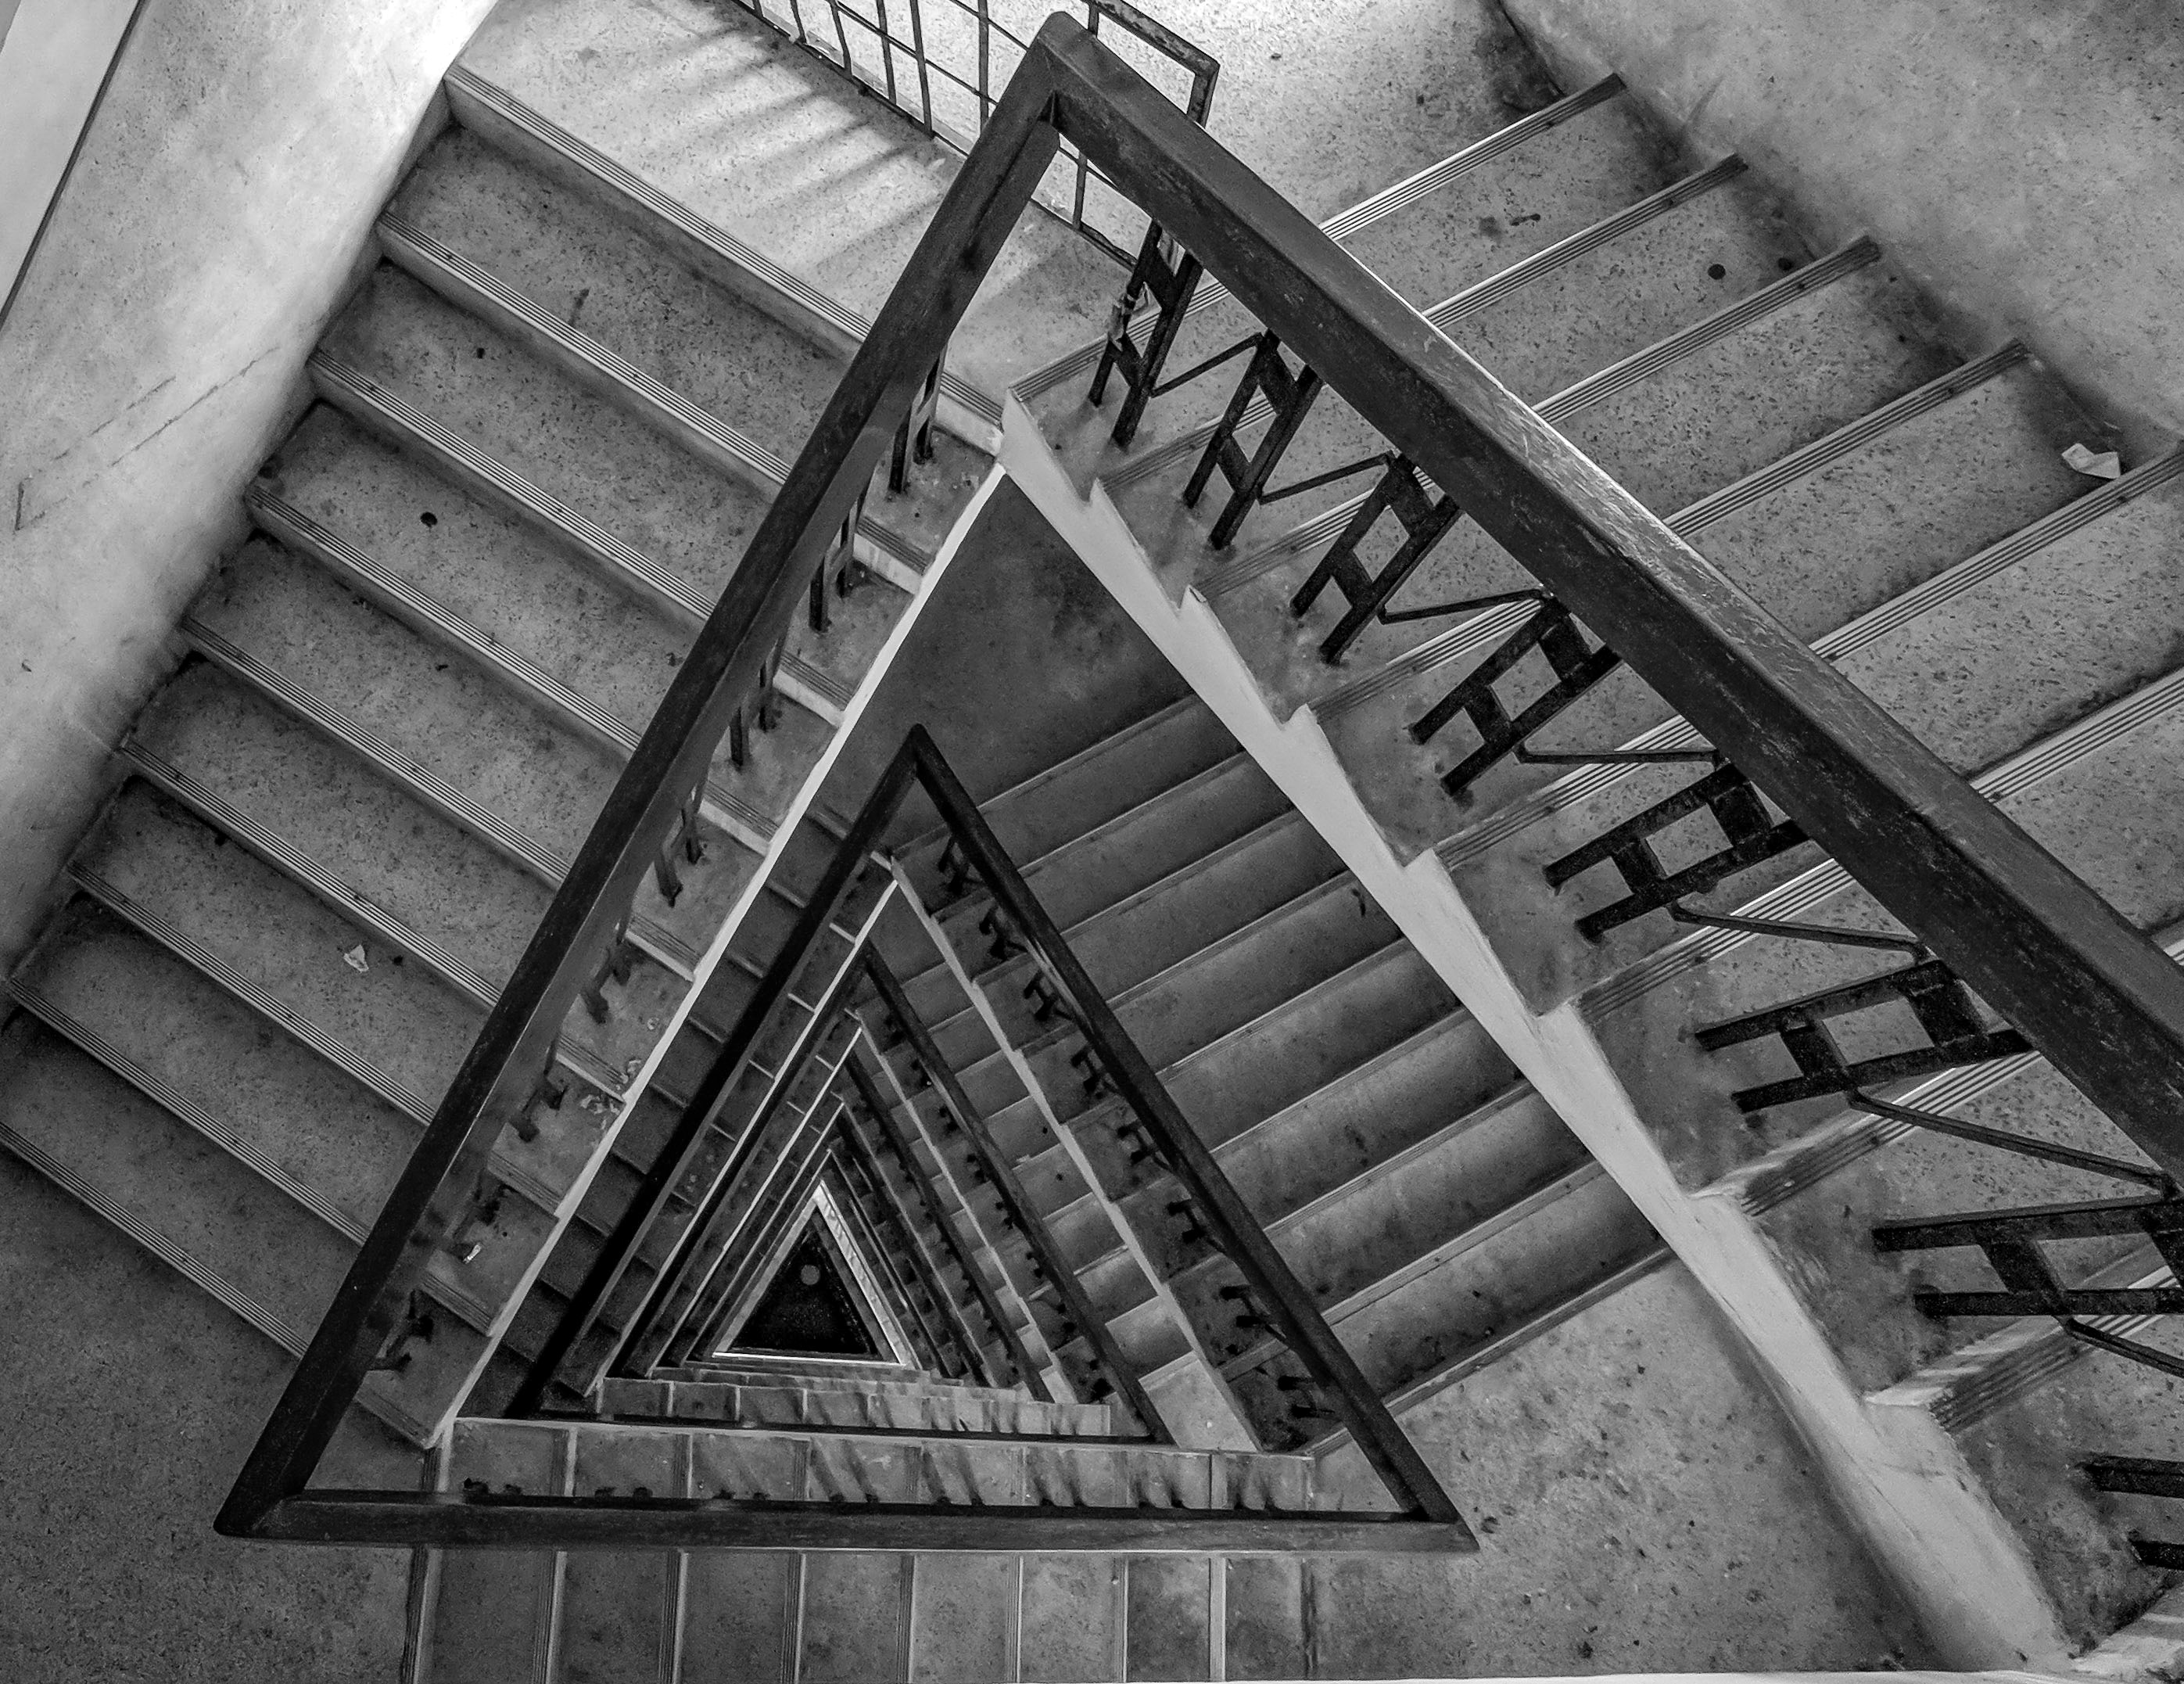 Multi-floor Stairs Grayscale Photo · Free Stock Photo